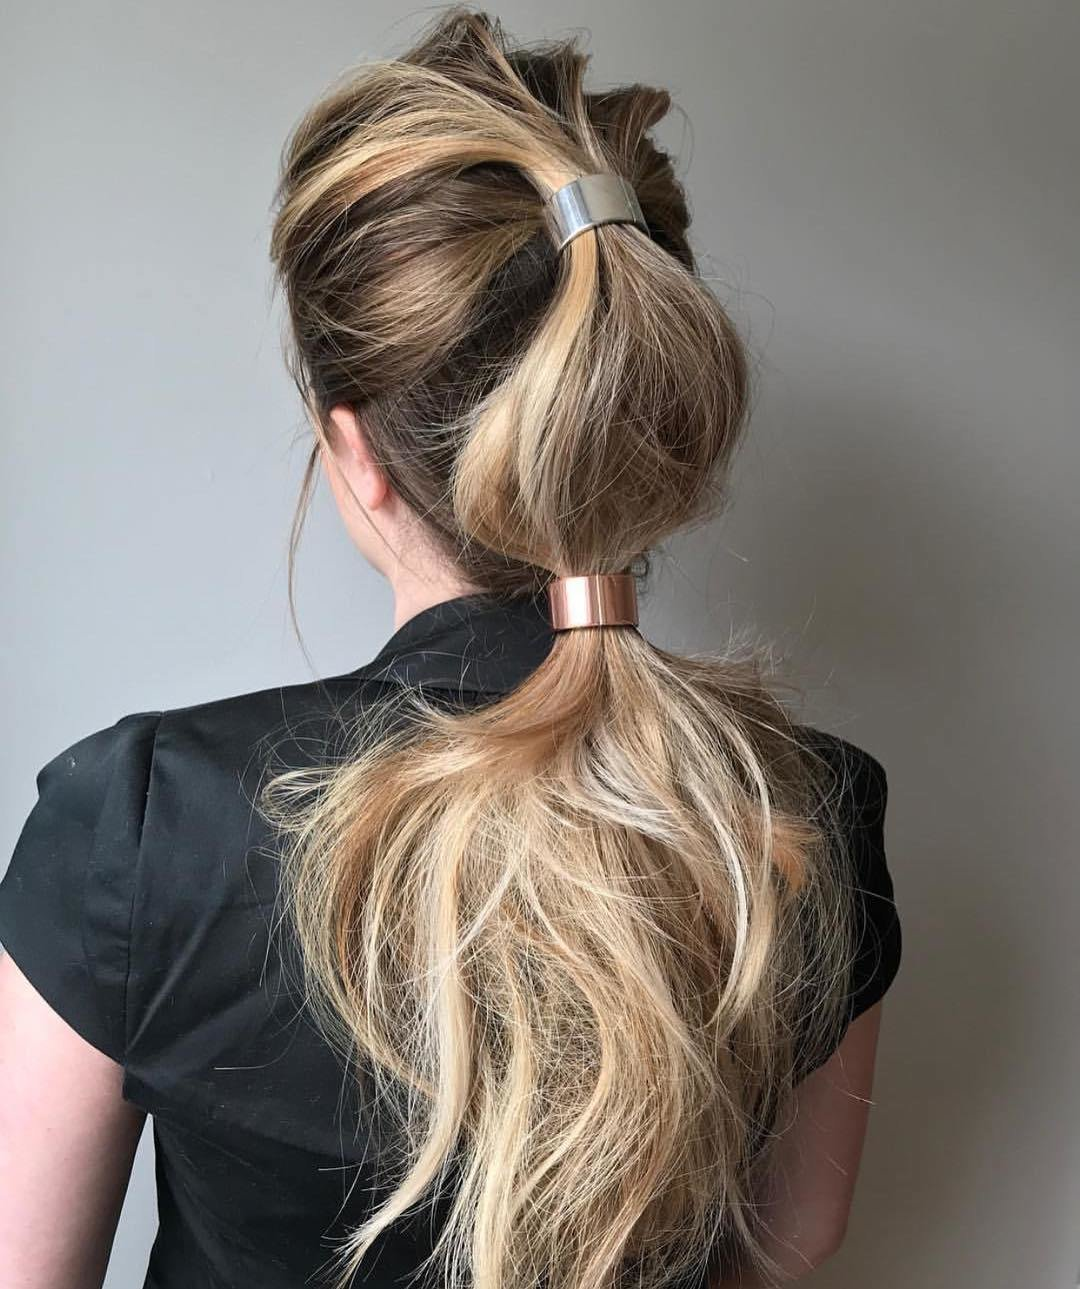 New 10 Trendiest Ponytail Hairstyles For Long Hair 2019 Easy Ideas With Pictures